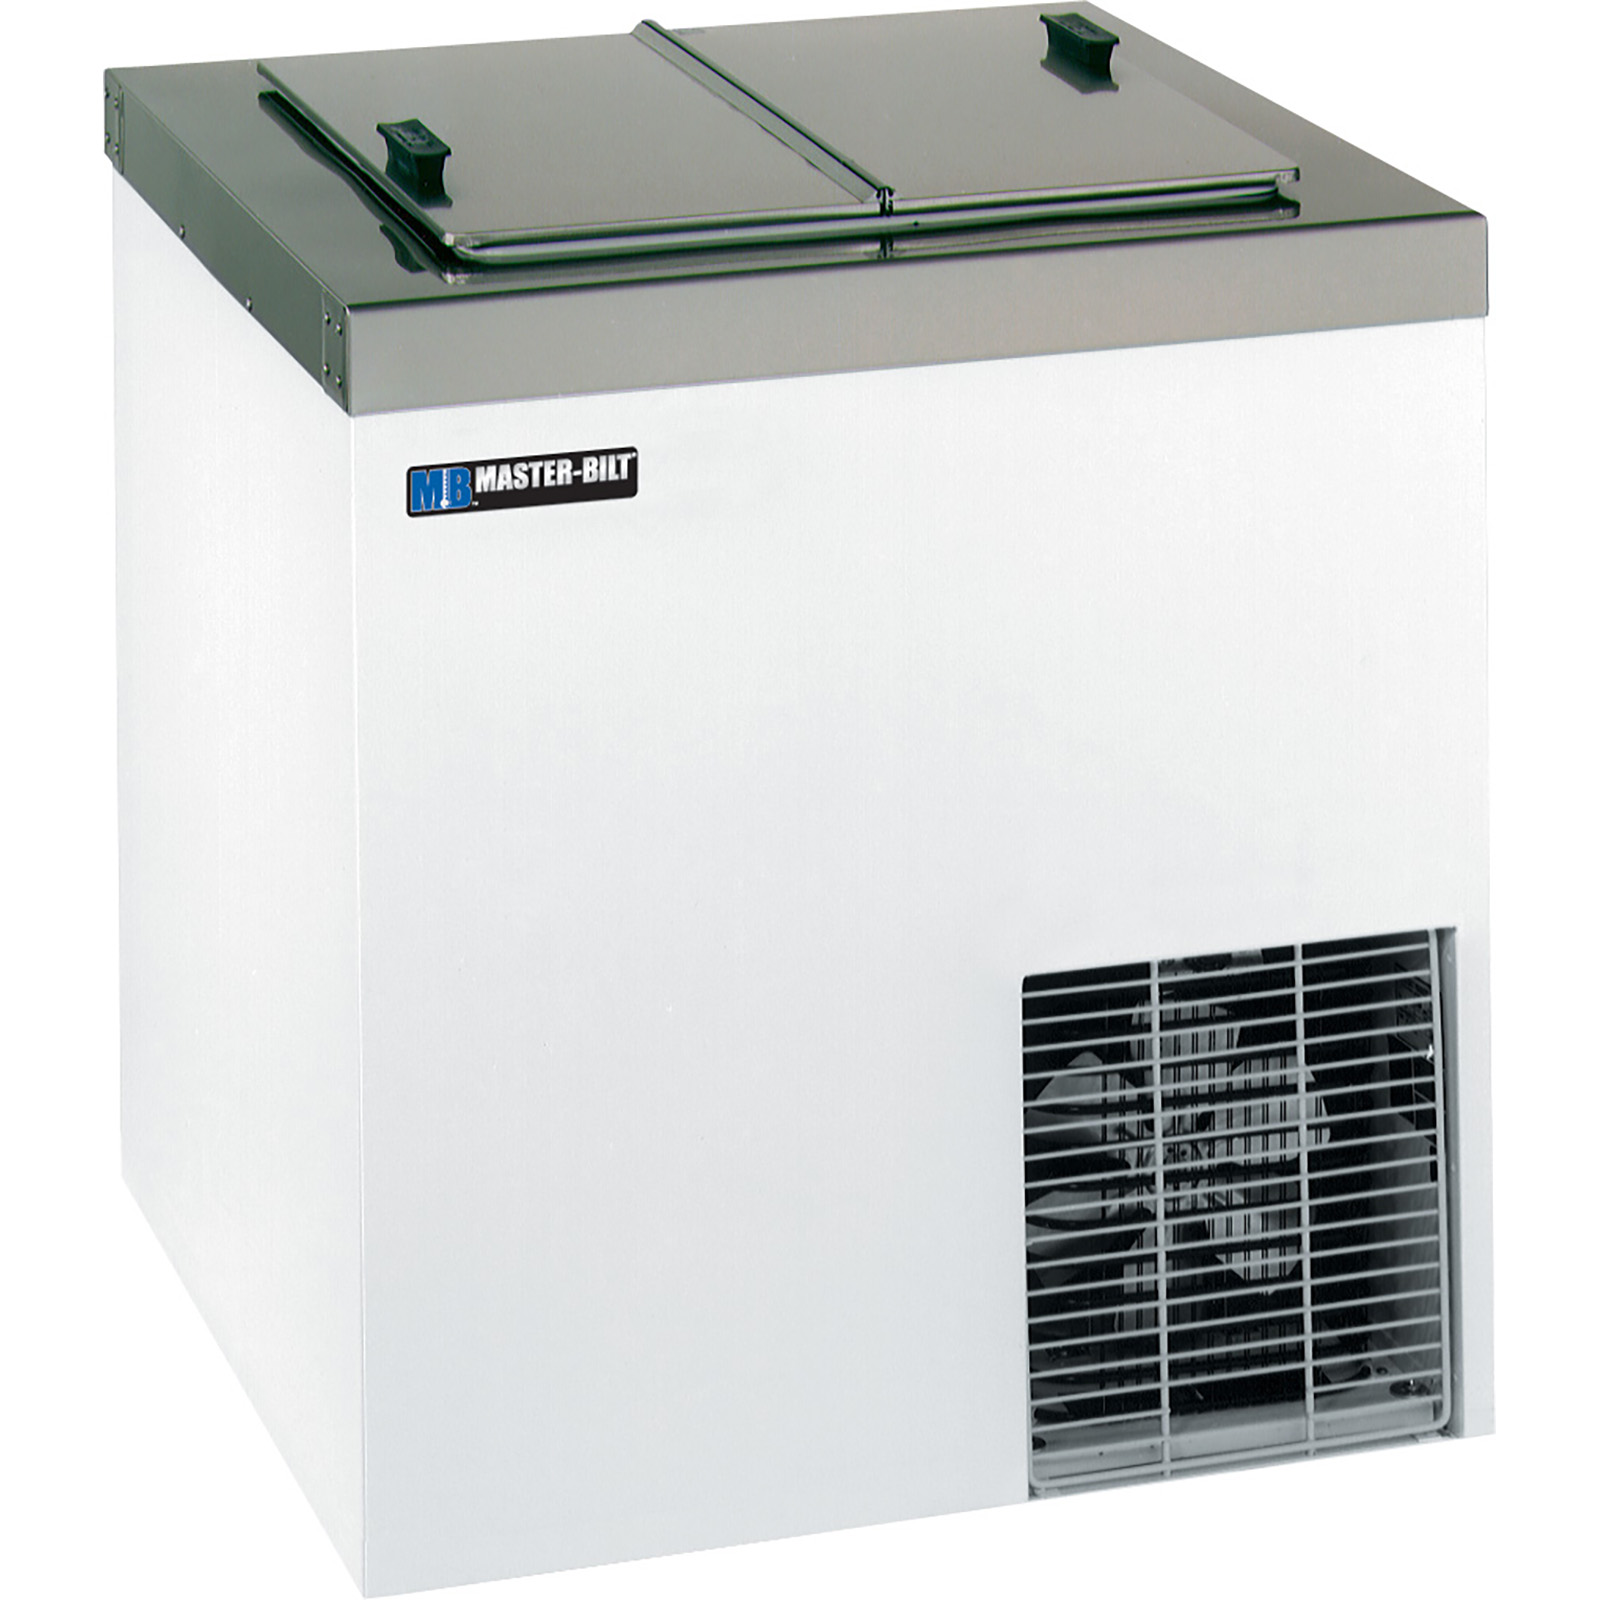 Master-Bilt Products DC-4D ice cream dipping cabinet